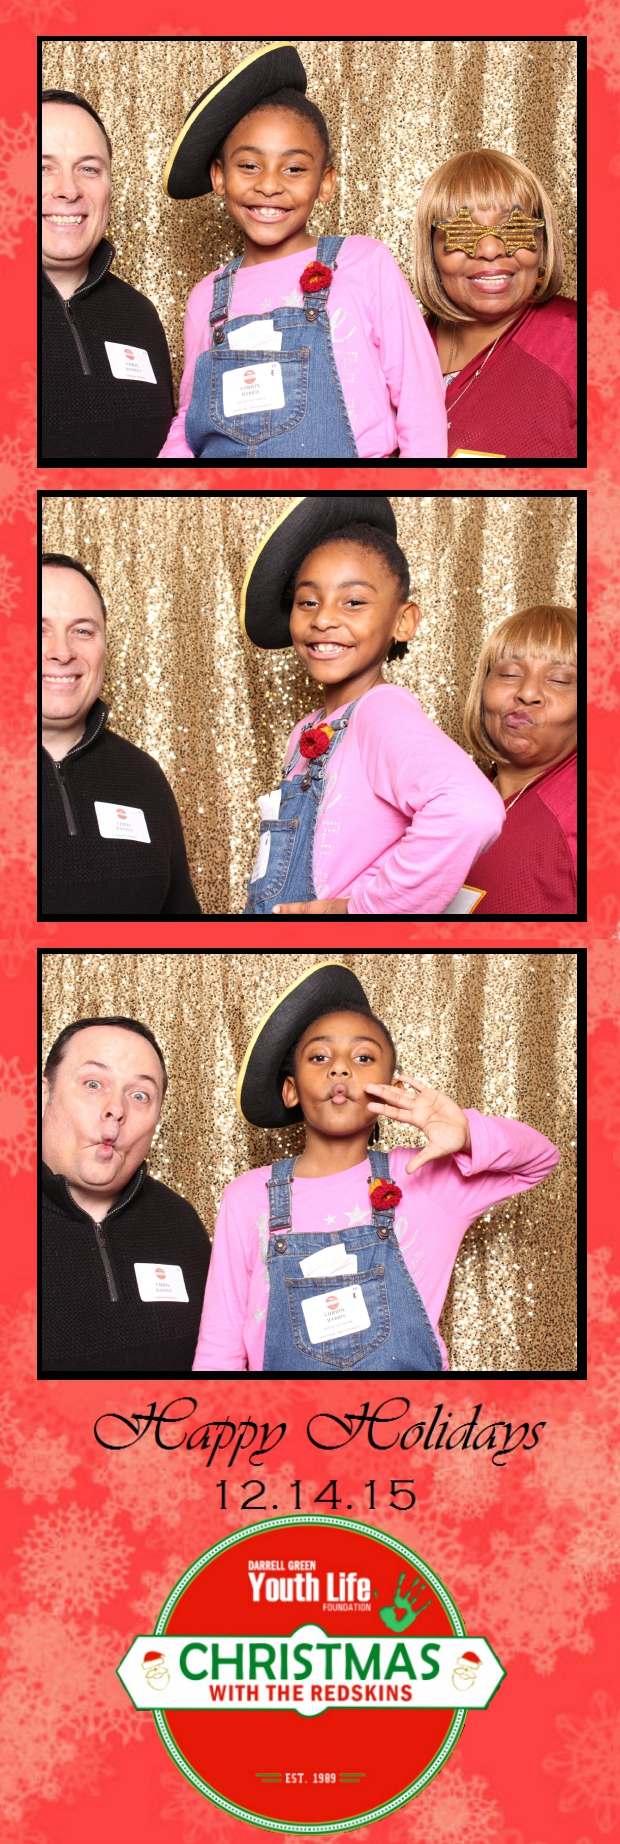 Guest House Events Photo Booth DGYLF Strips (11).jpg